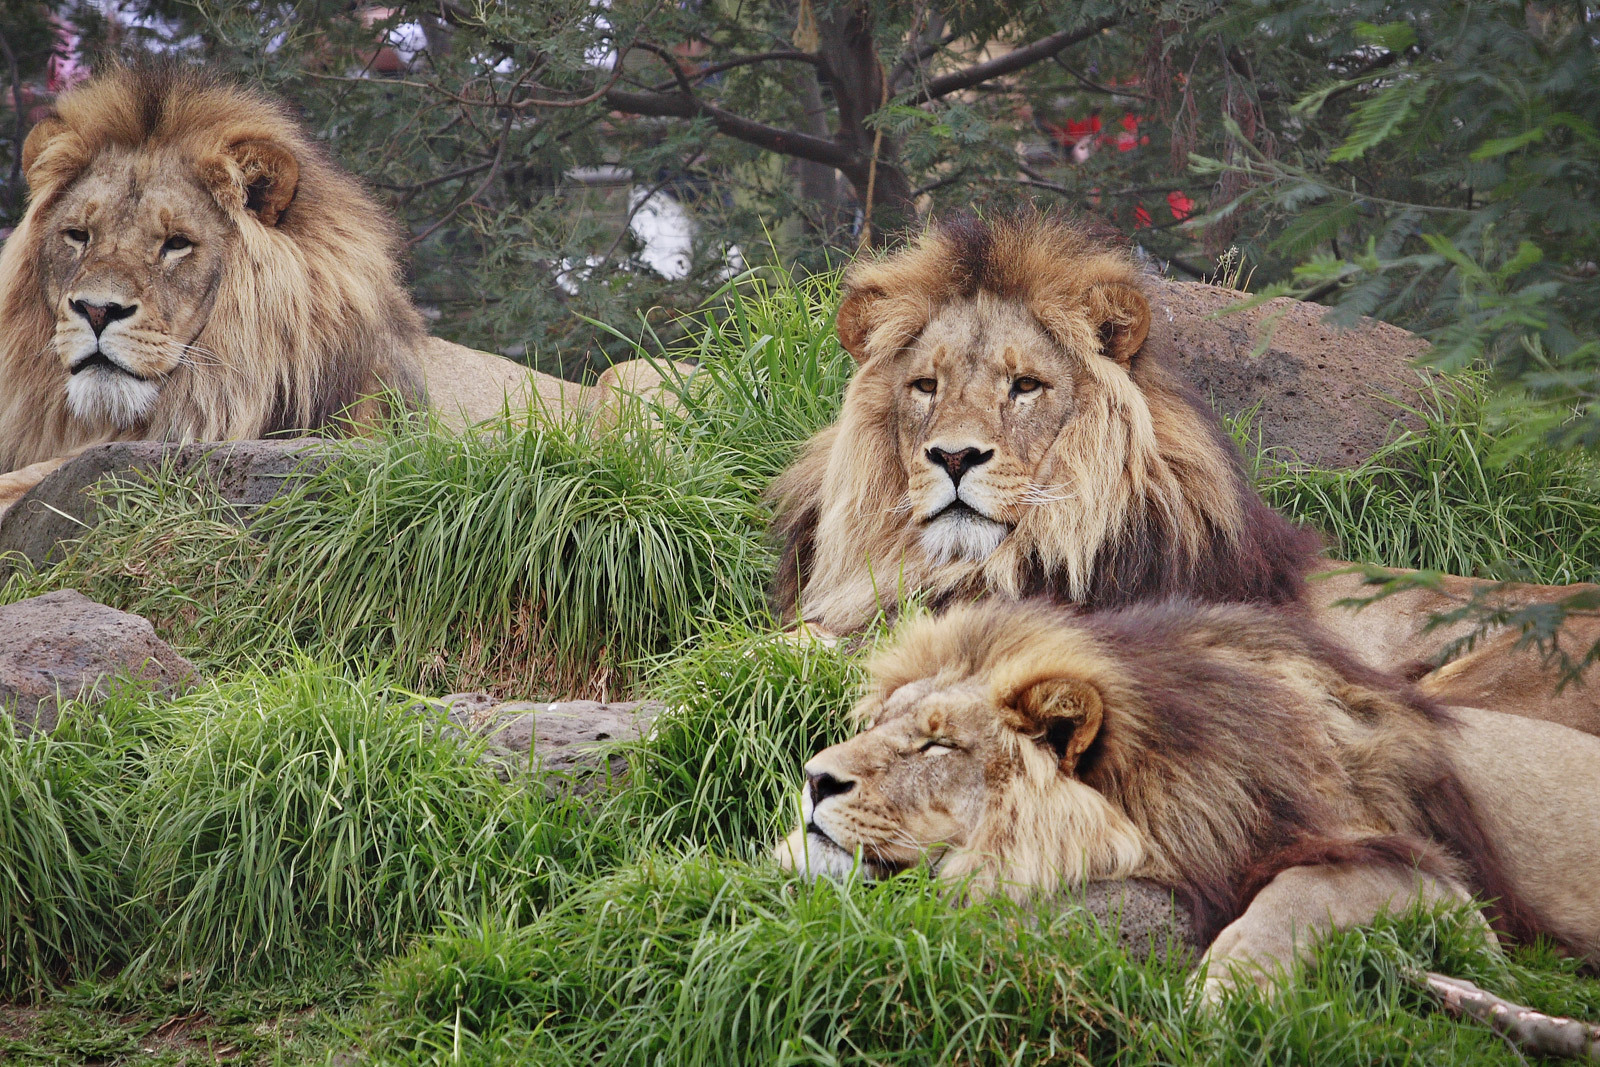 Lion Hd Wallpapers: Lion Wallpapers Hd